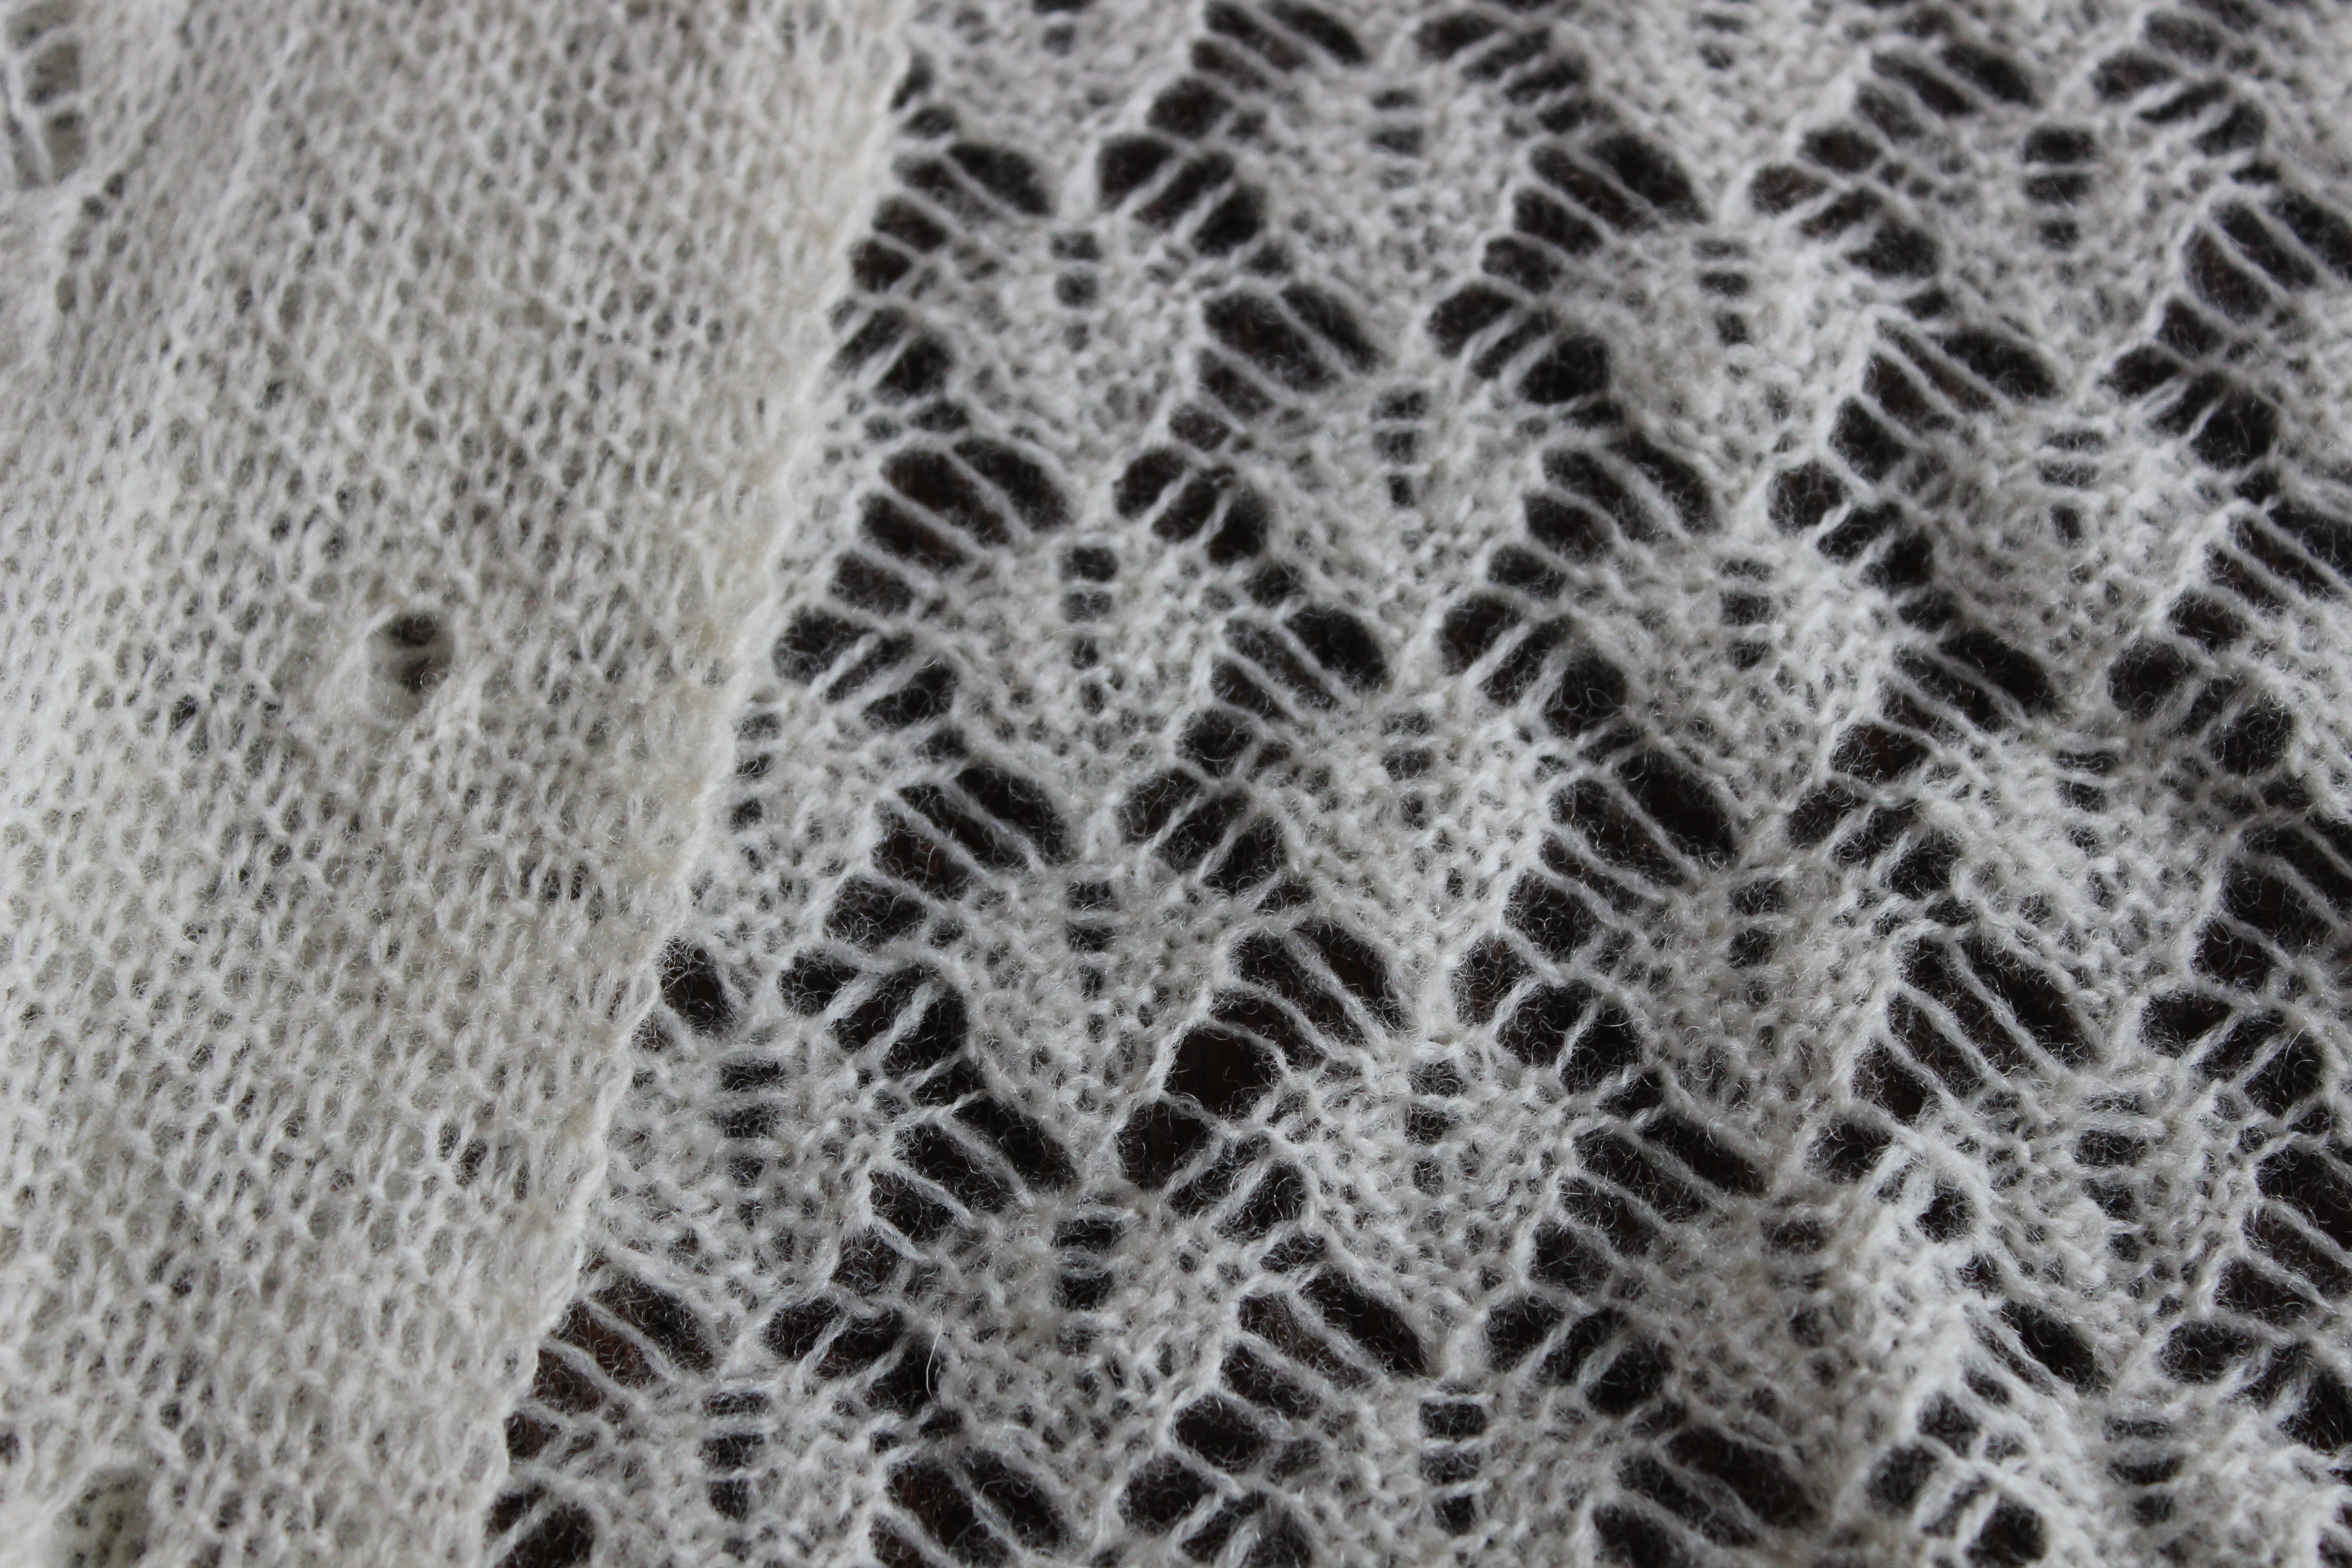 Lace cardigans ella gordon although it feels and looks like cobweb 1ply wool when you look closely it is a very fine 2ply with a complicated all over lace pattern bankloansurffo Images